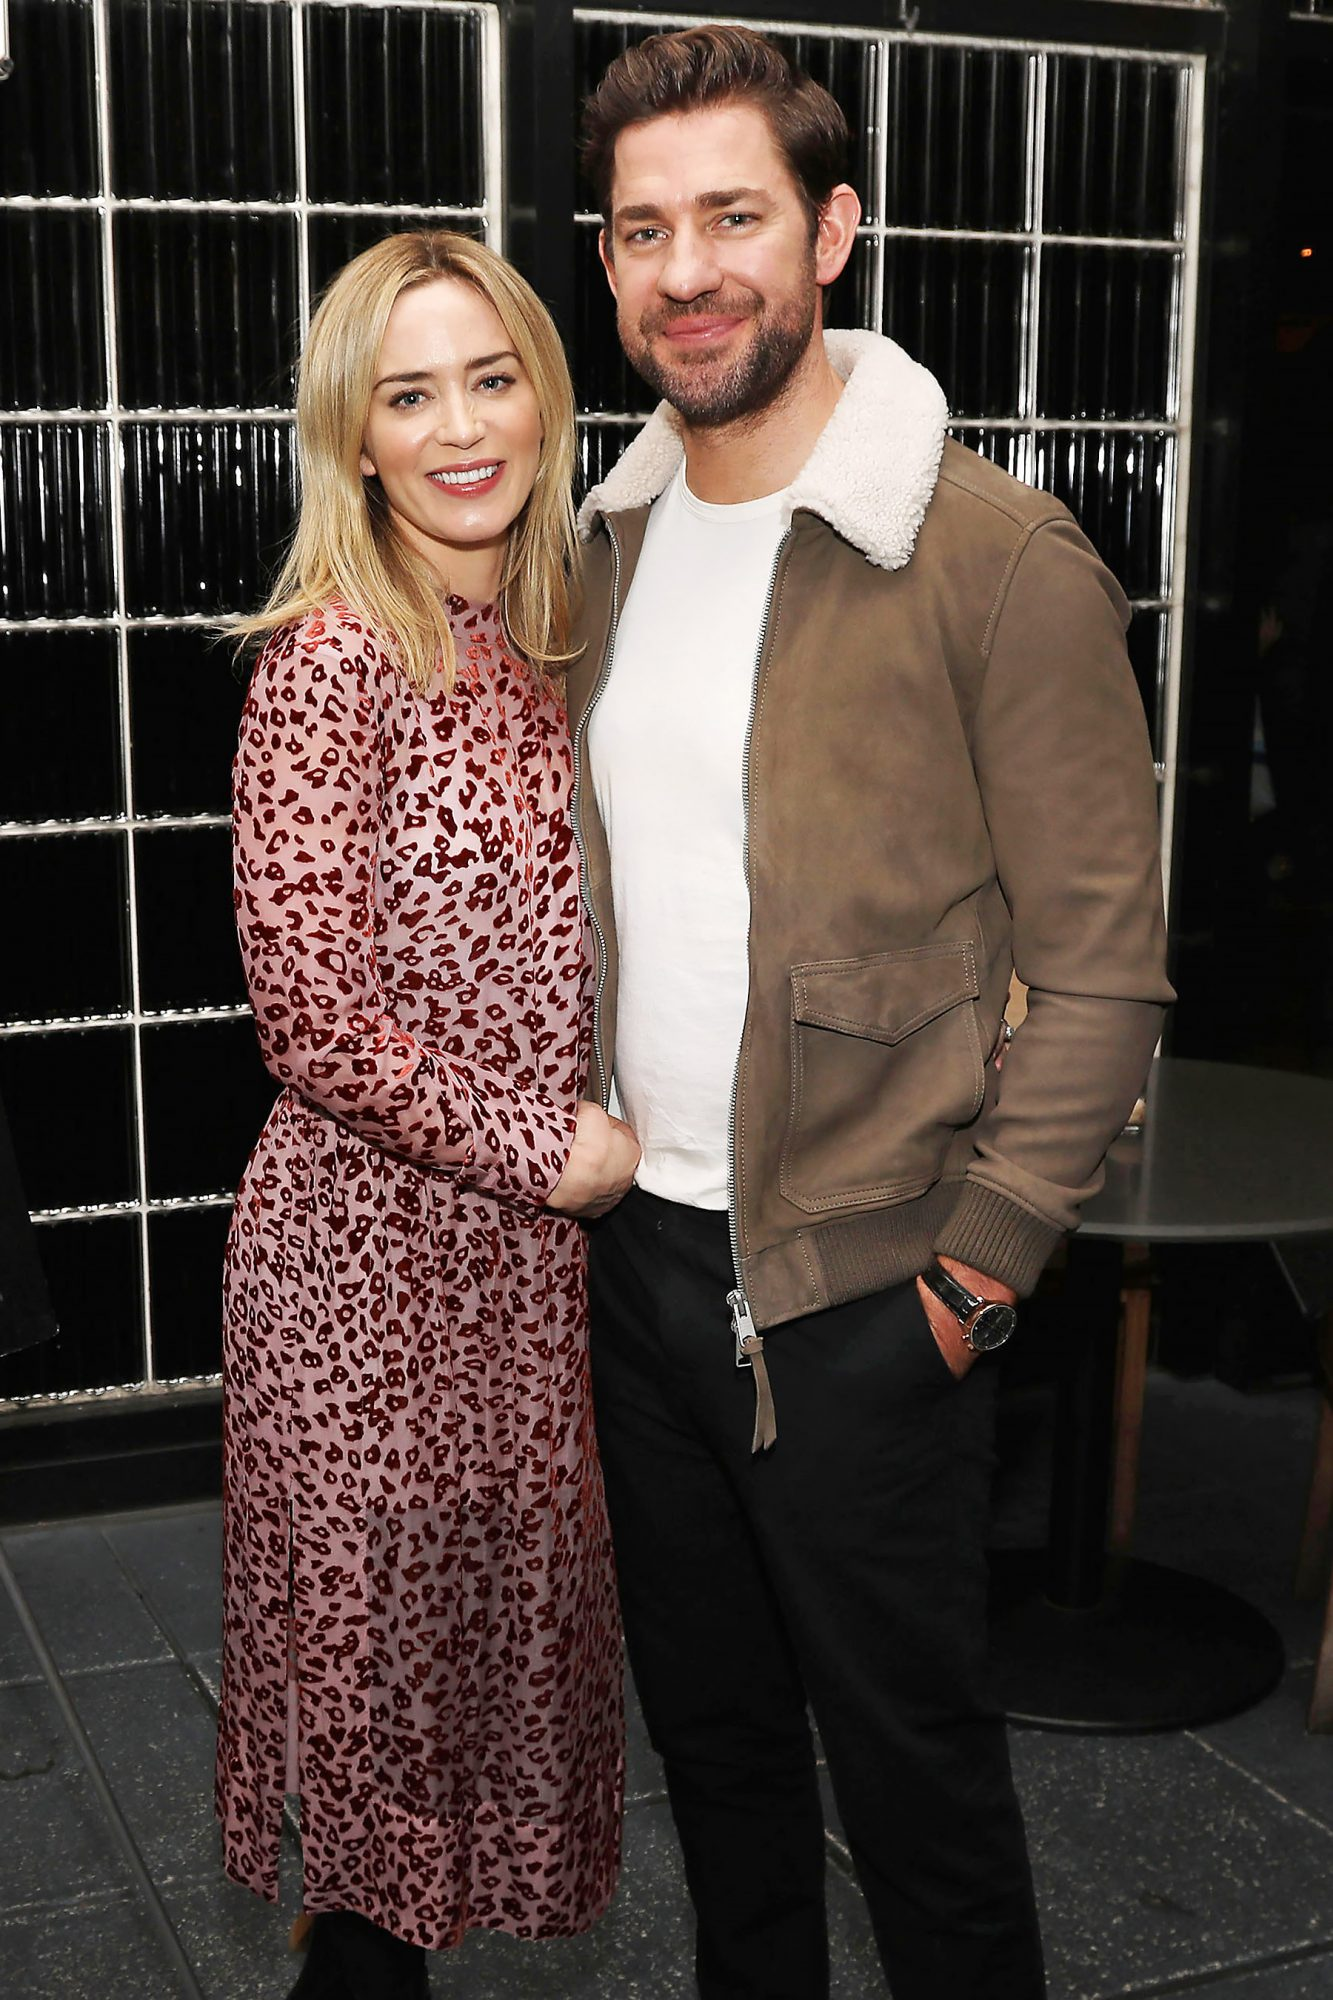 Reception for a Special Screening of Paramount Pictures' Film 'A Quiet Place', New York, USA - 12 Nov 2018